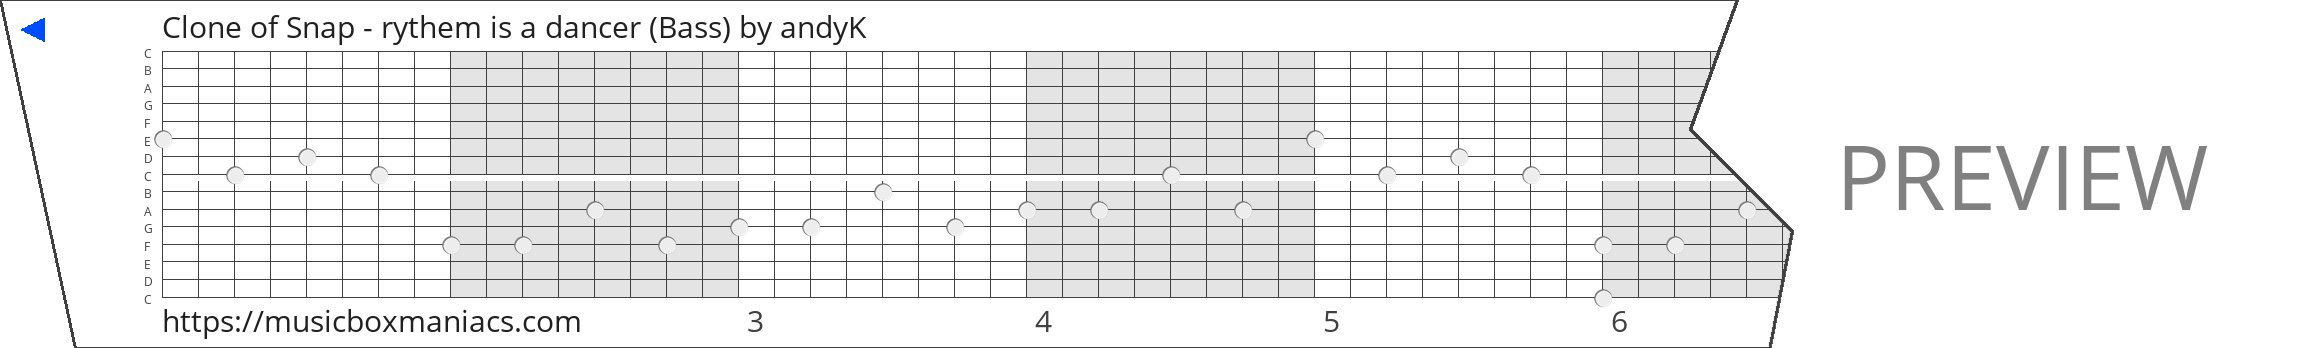 Clone of Snap - rythem is a dancer (Bass) 15 note music box paper strip